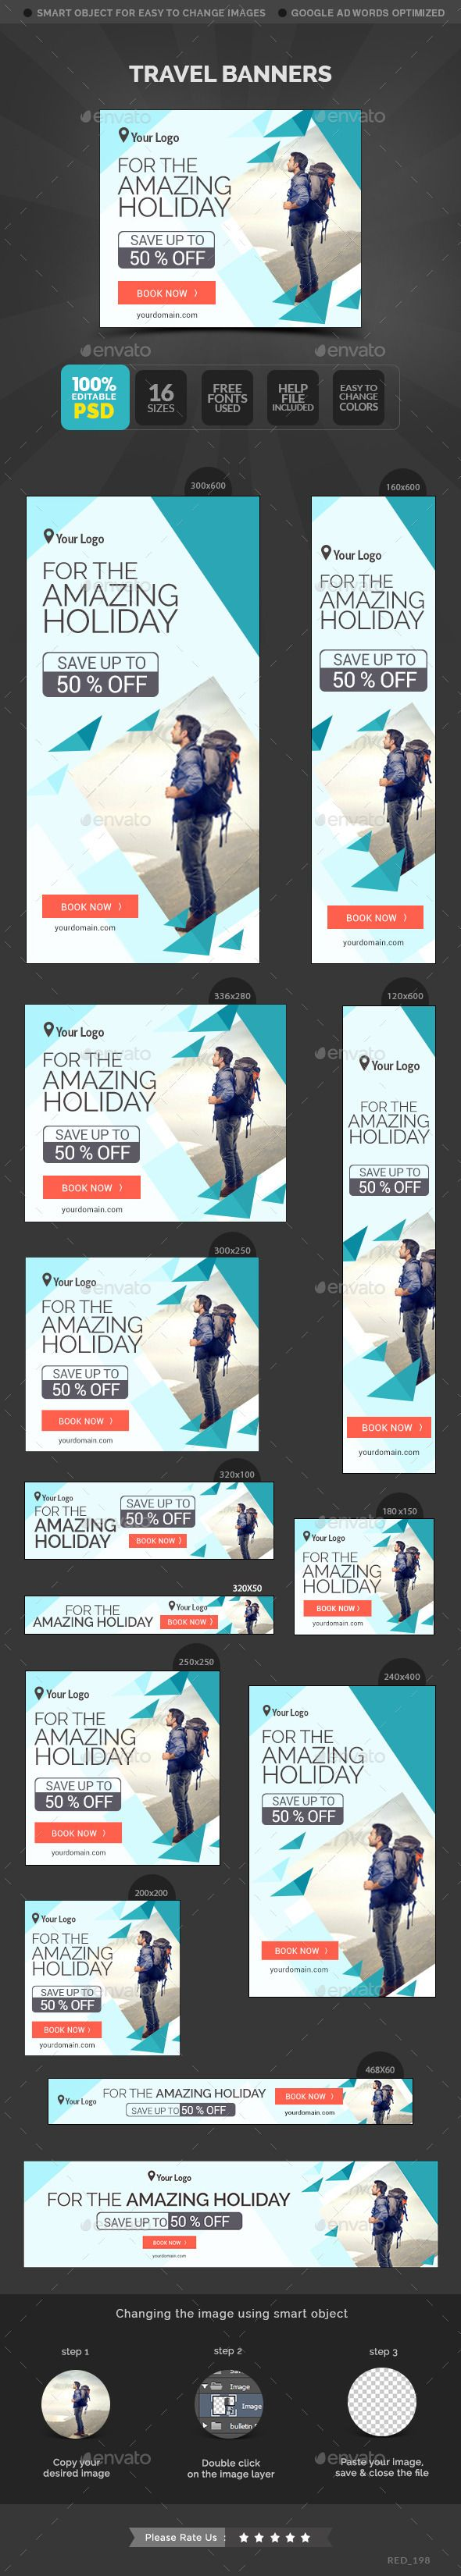 Travel Banners Template #design Download: http://graphicriver.net/item/travel-banners/11455111?ref=ksioks